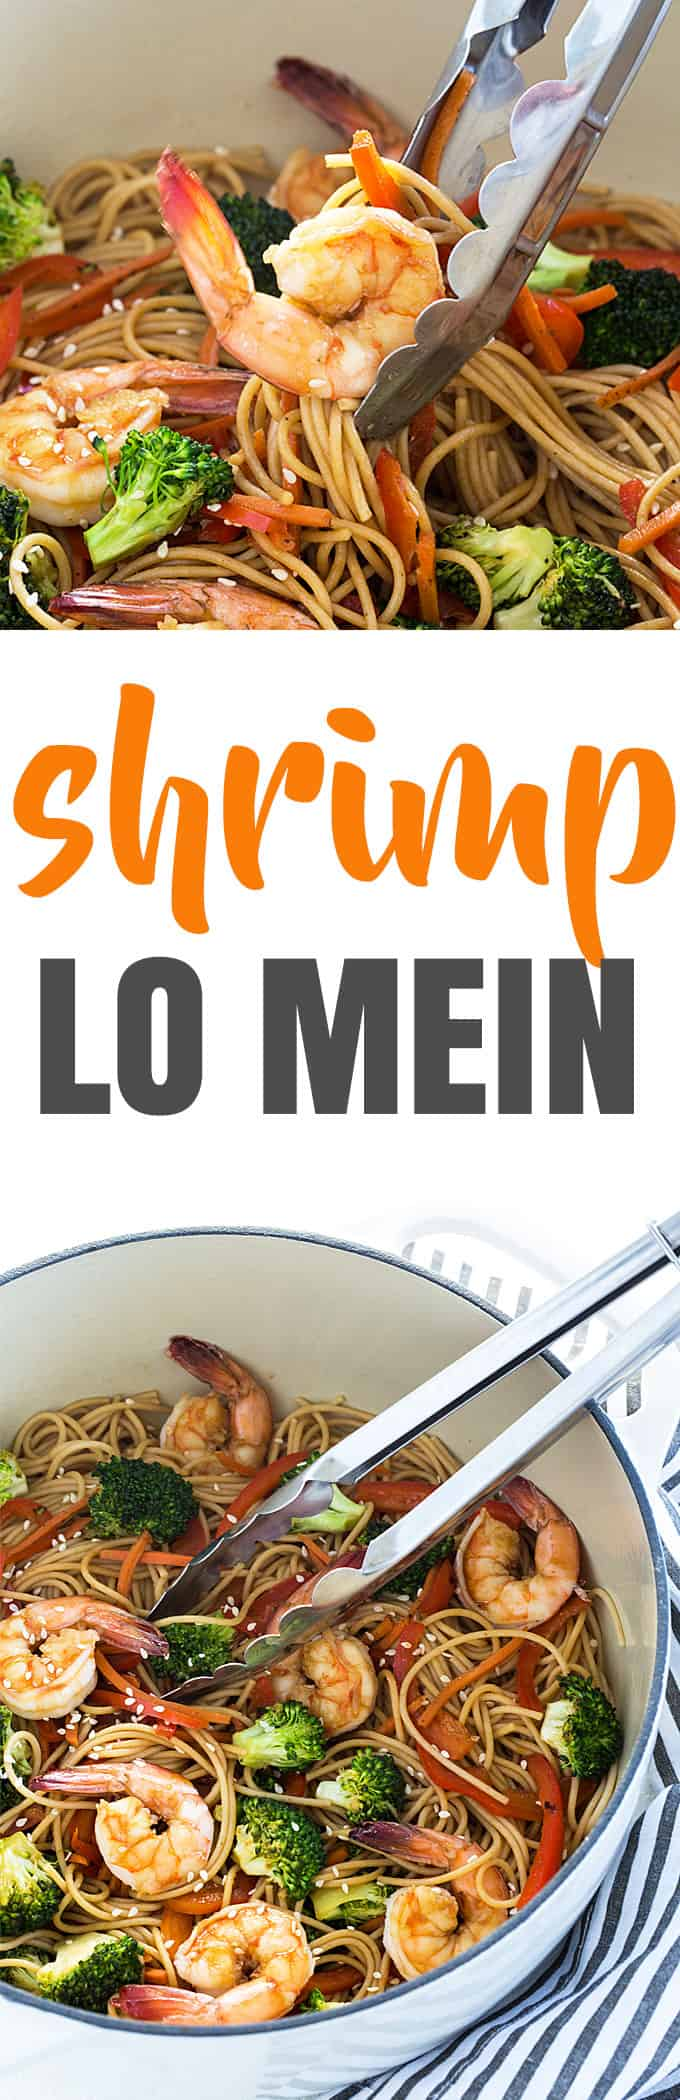 A two image vertical collage of shrimp lo mein with overlay text in the center.